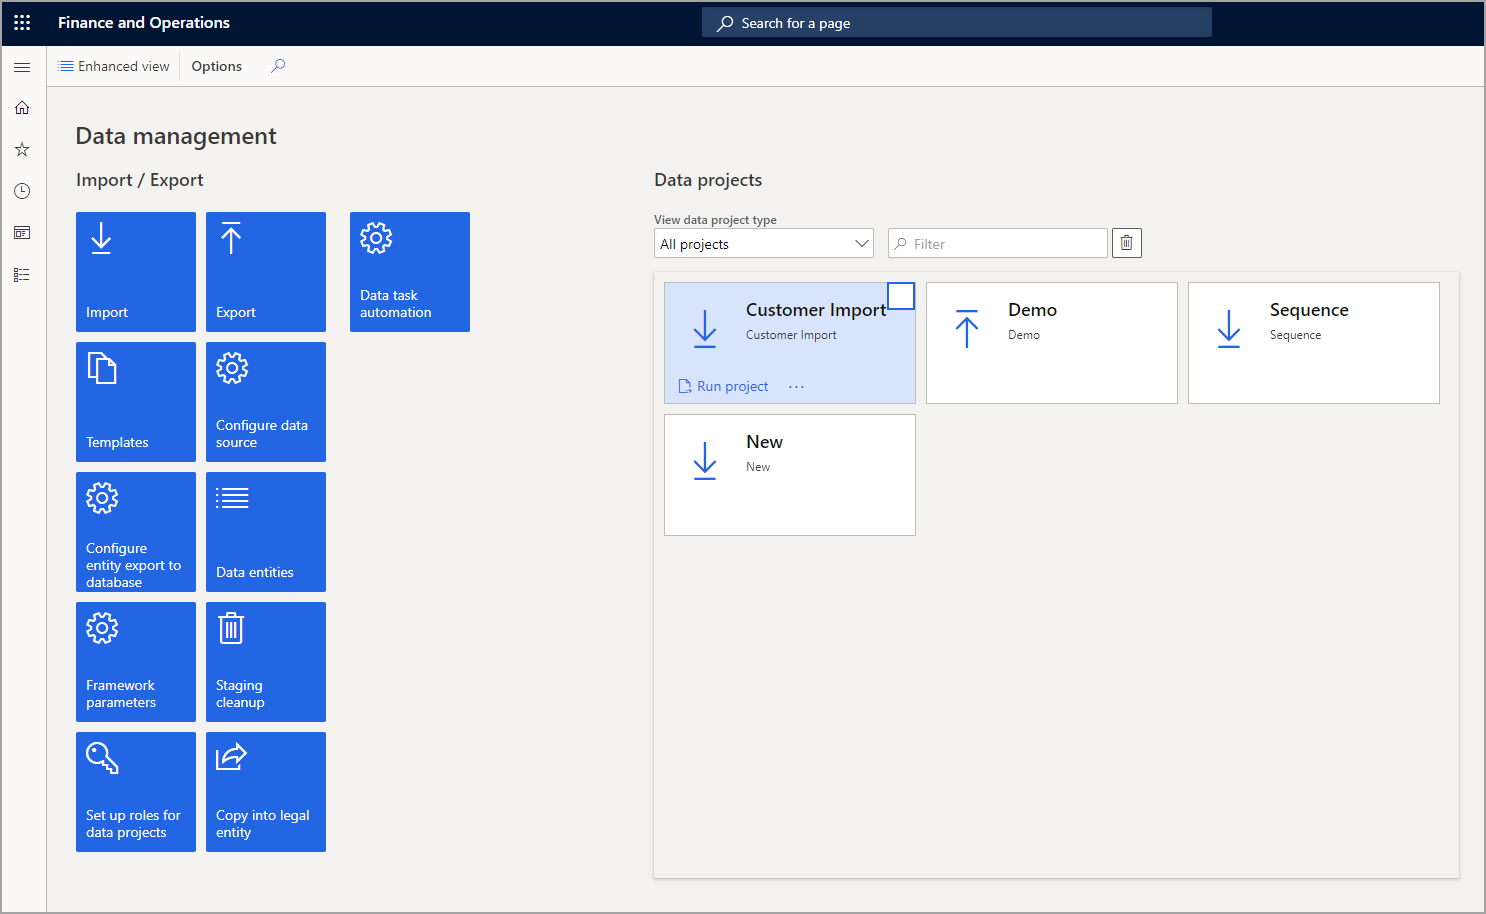 Screenshot of the Data management tiles in the Standard view.